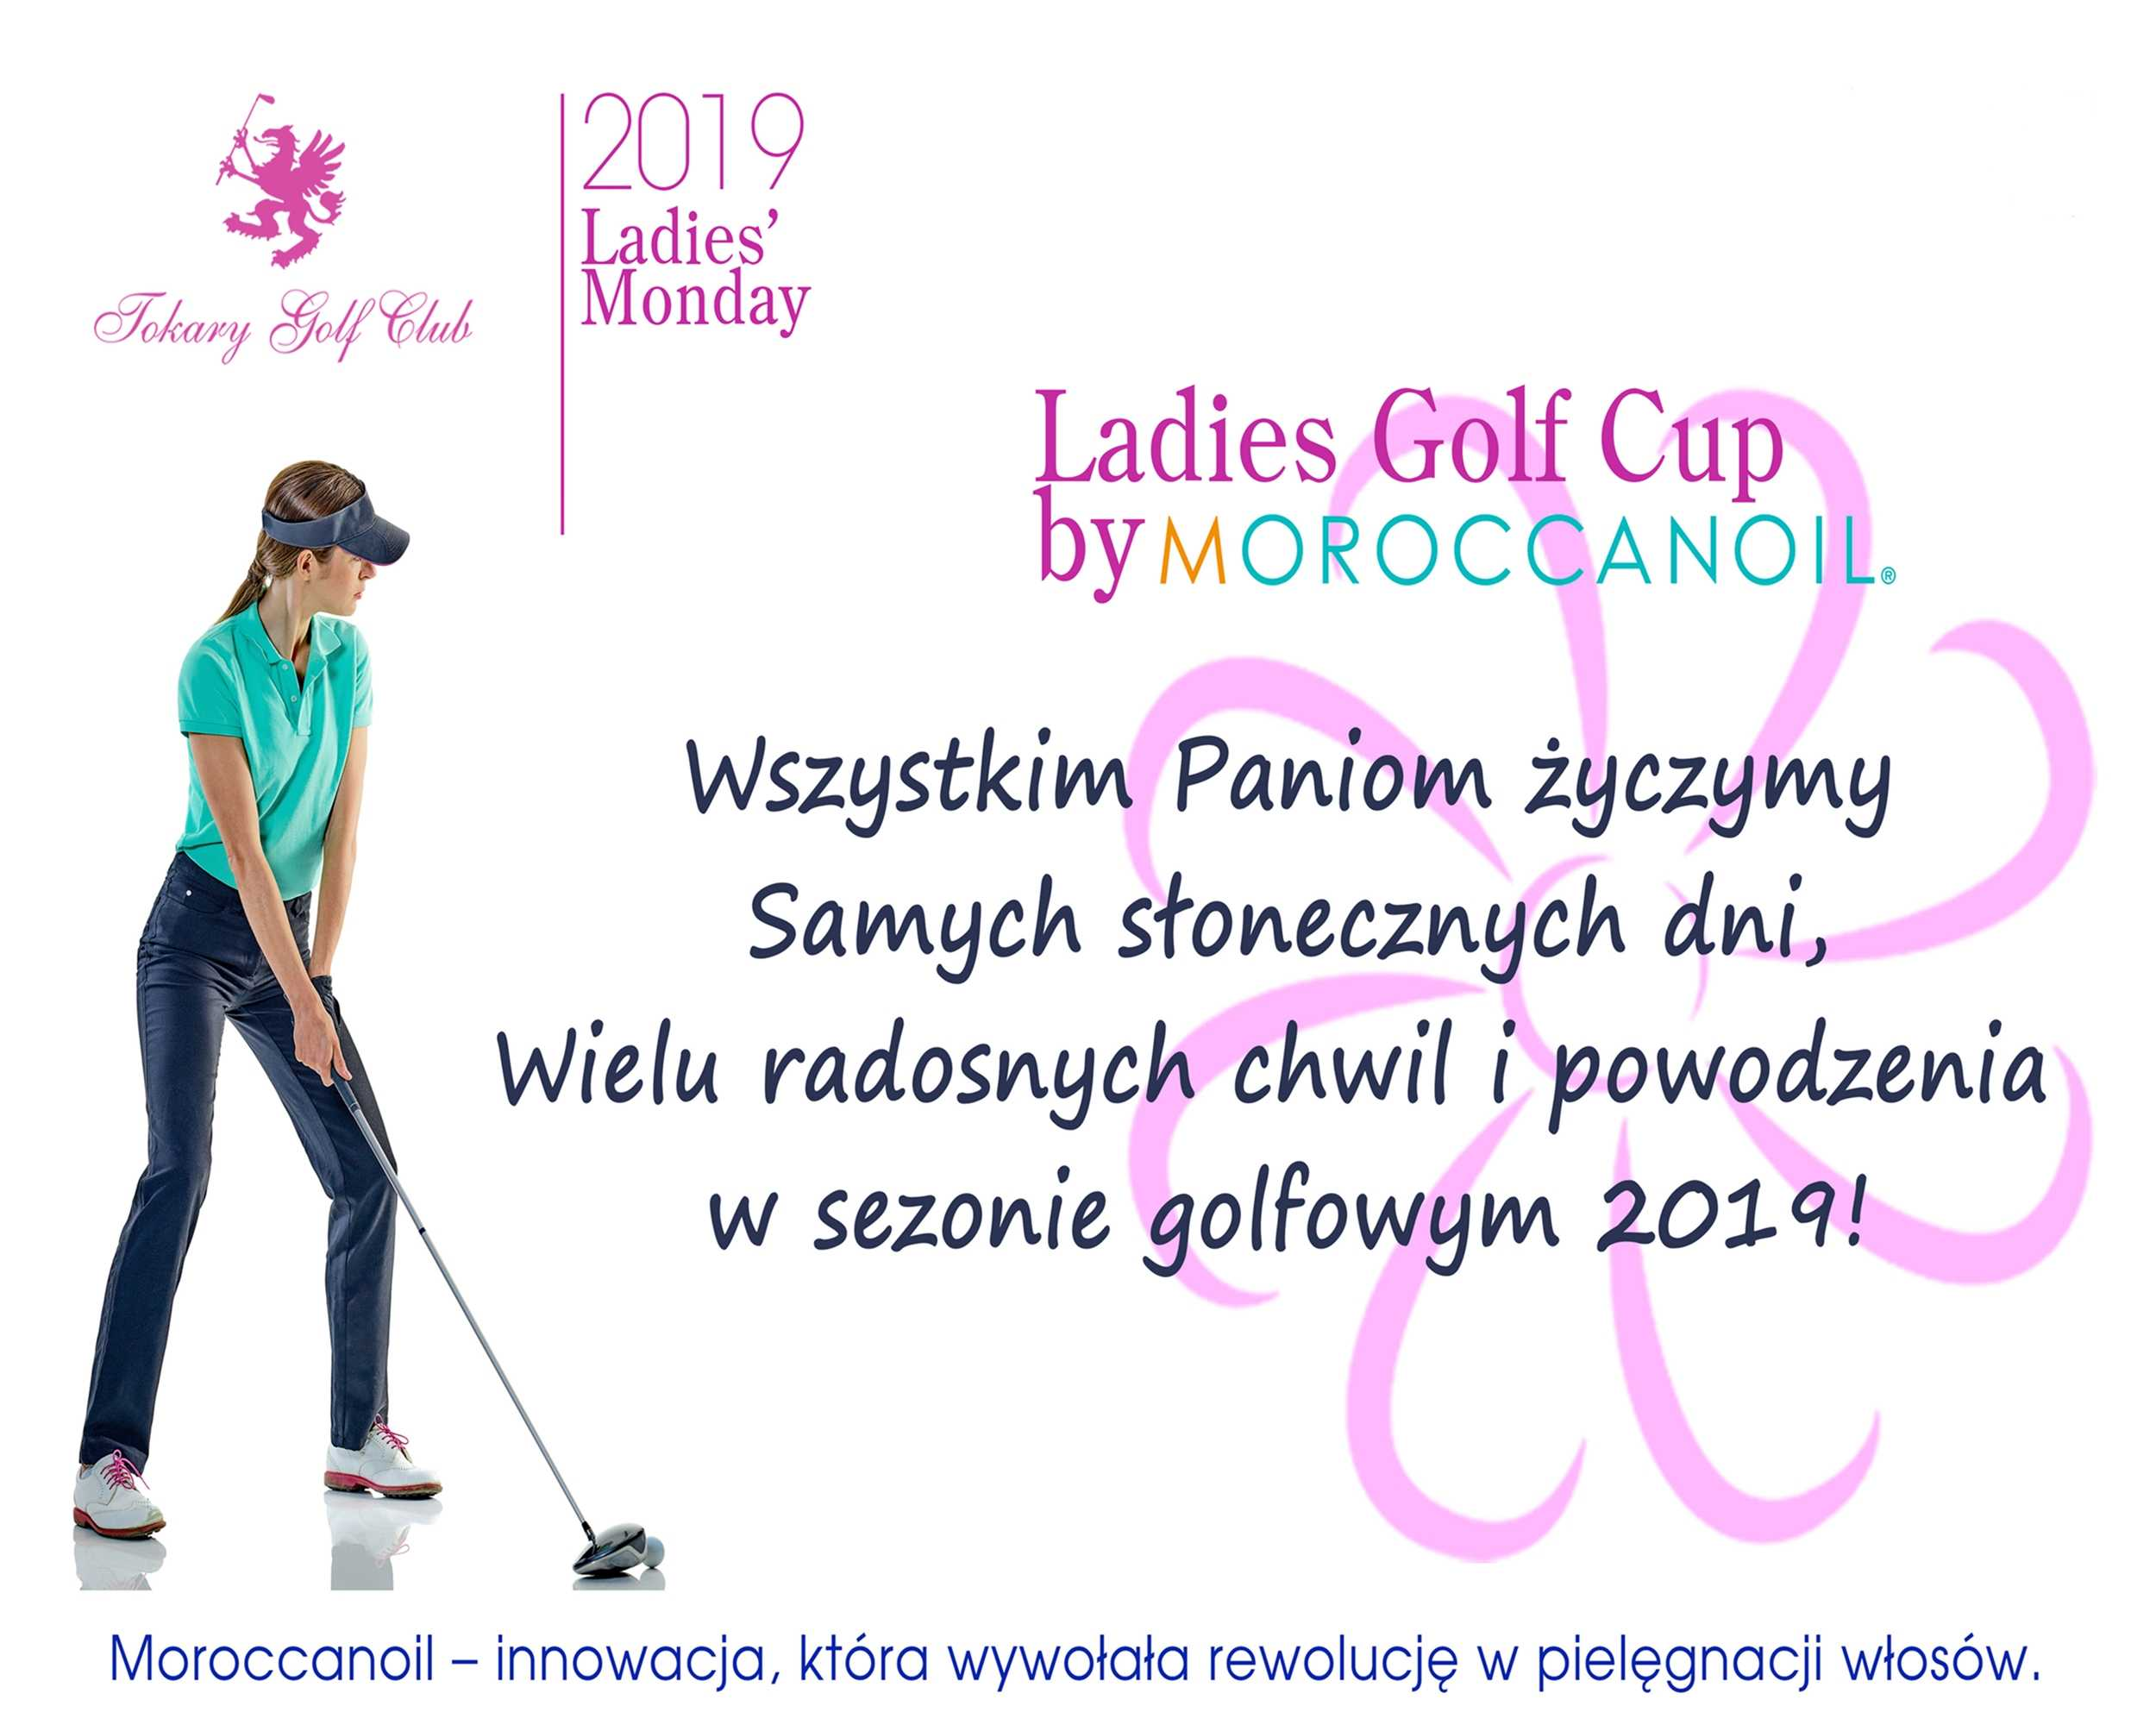 Ladies' Golf Cup by Moroccanoil